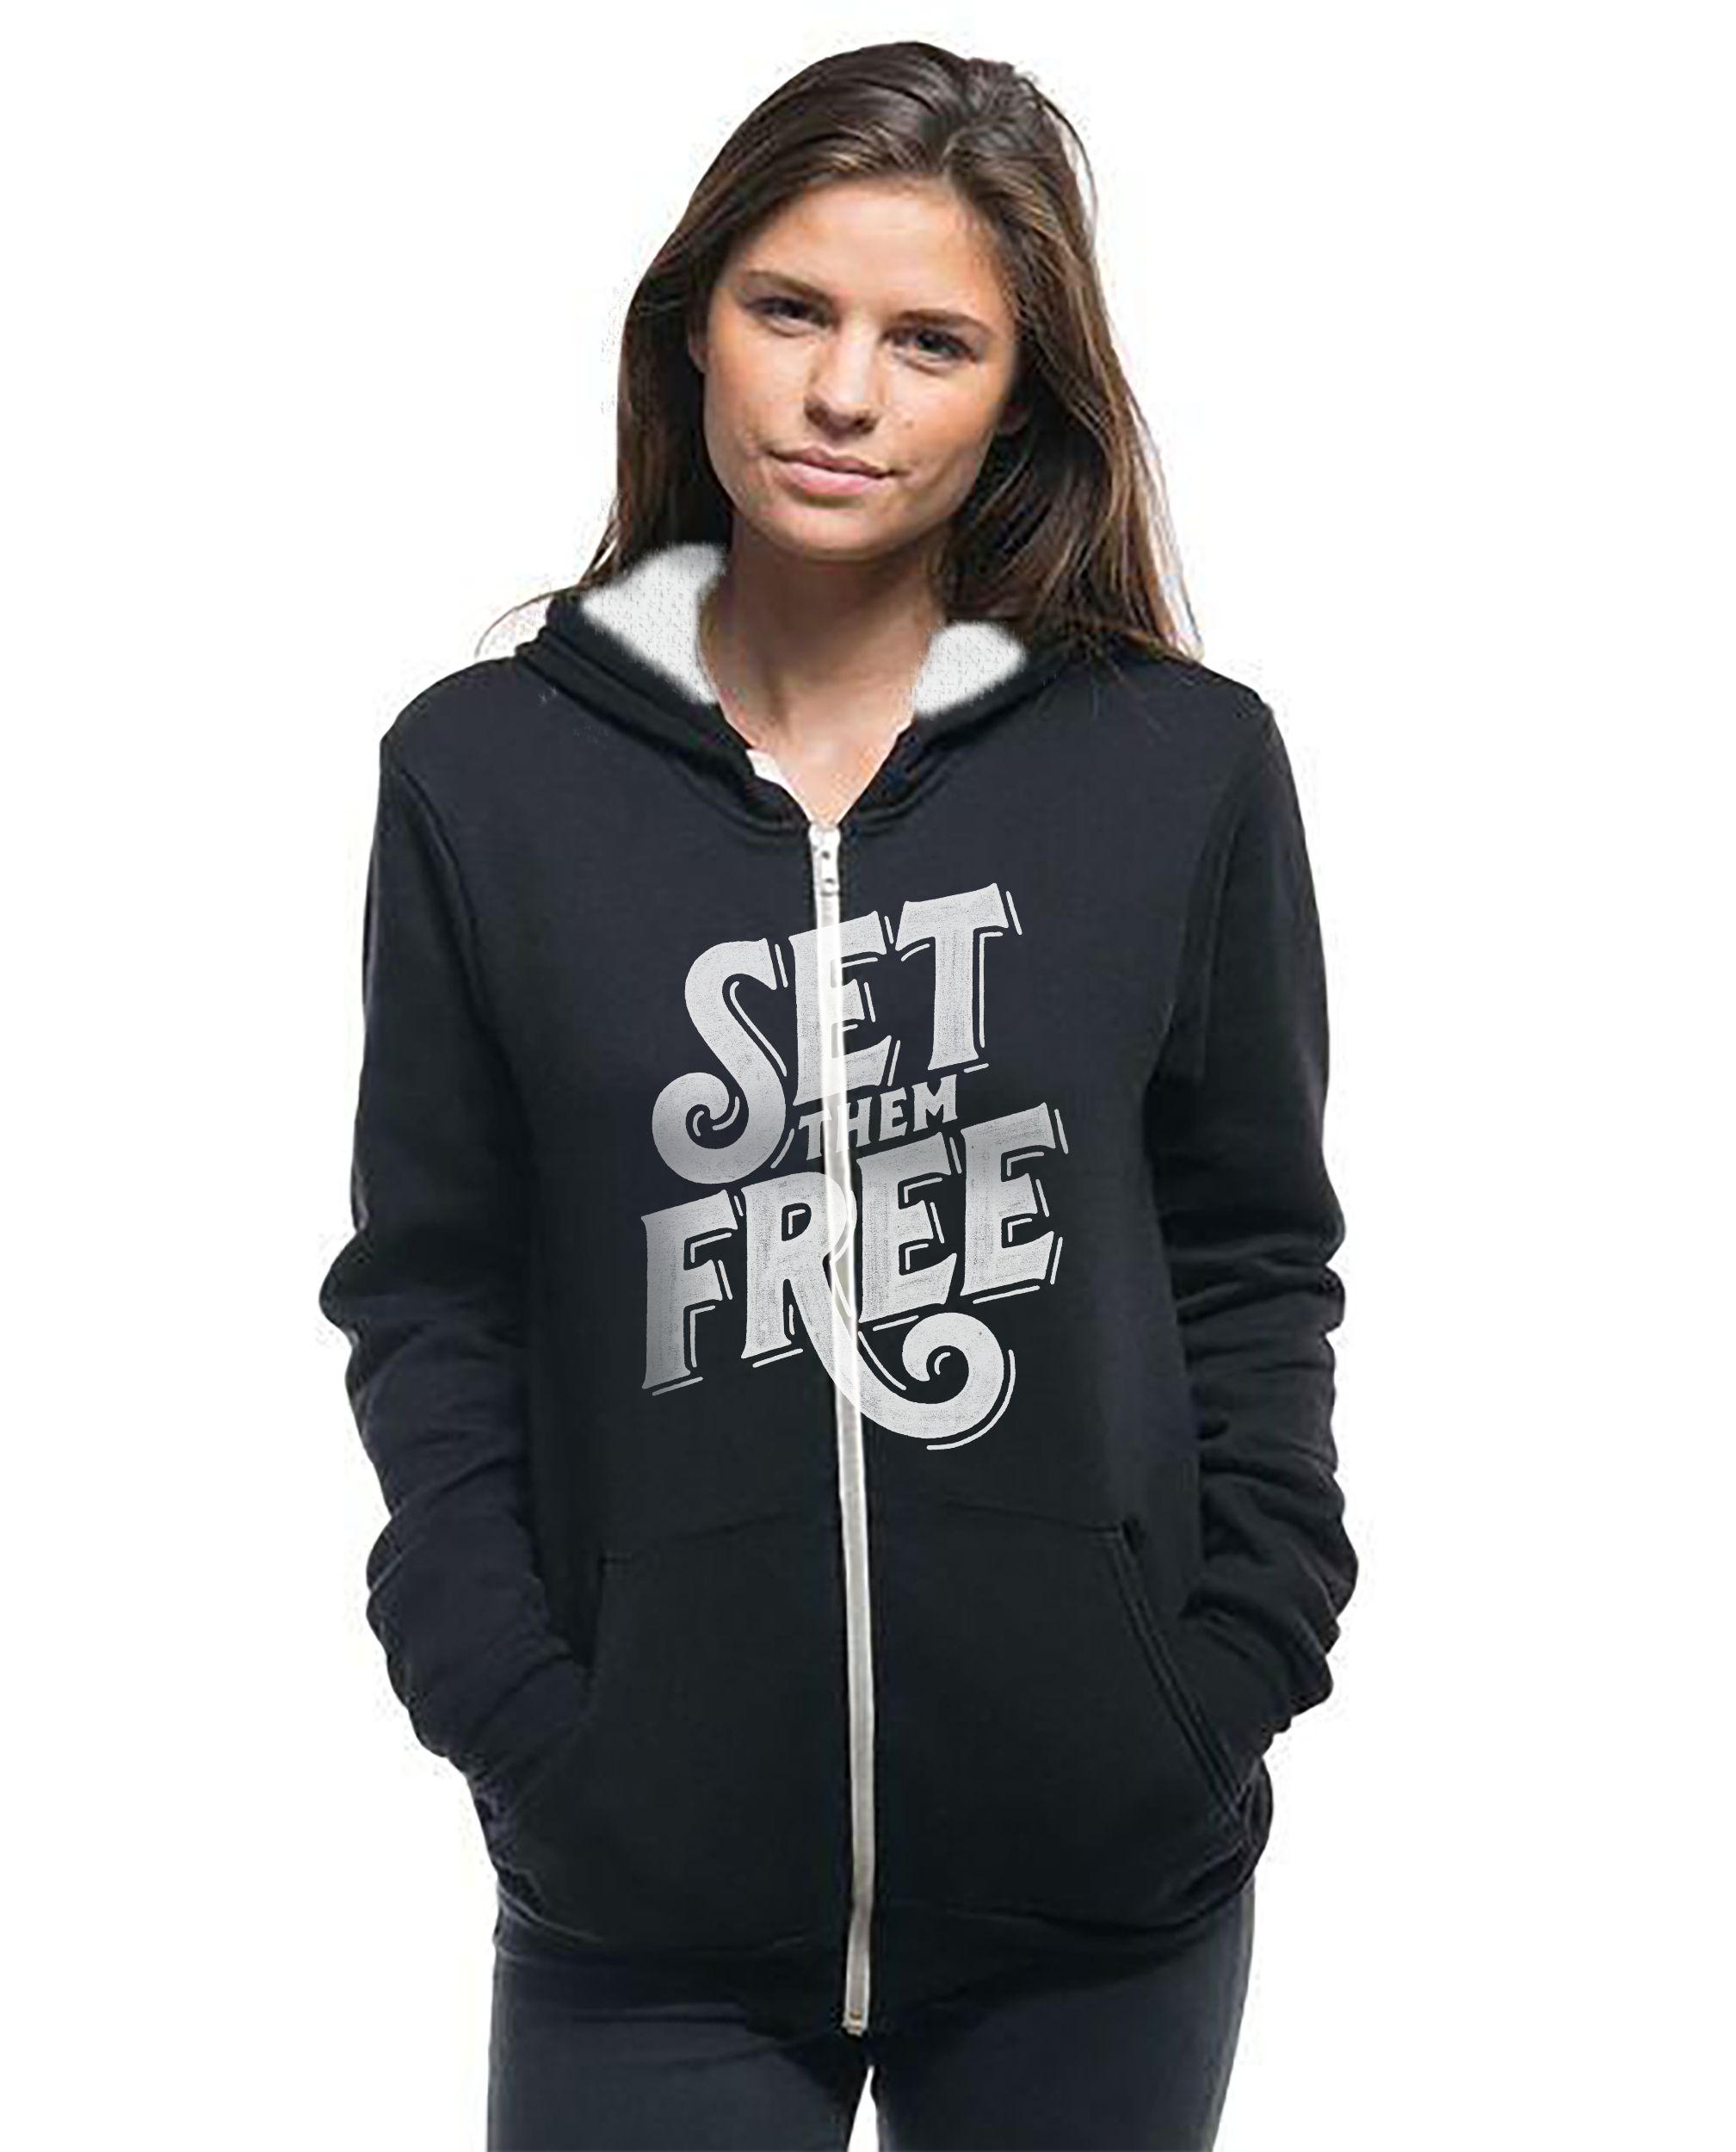 SET THEM FREE - Women's Sherpa Lined Full Zip Hoodie